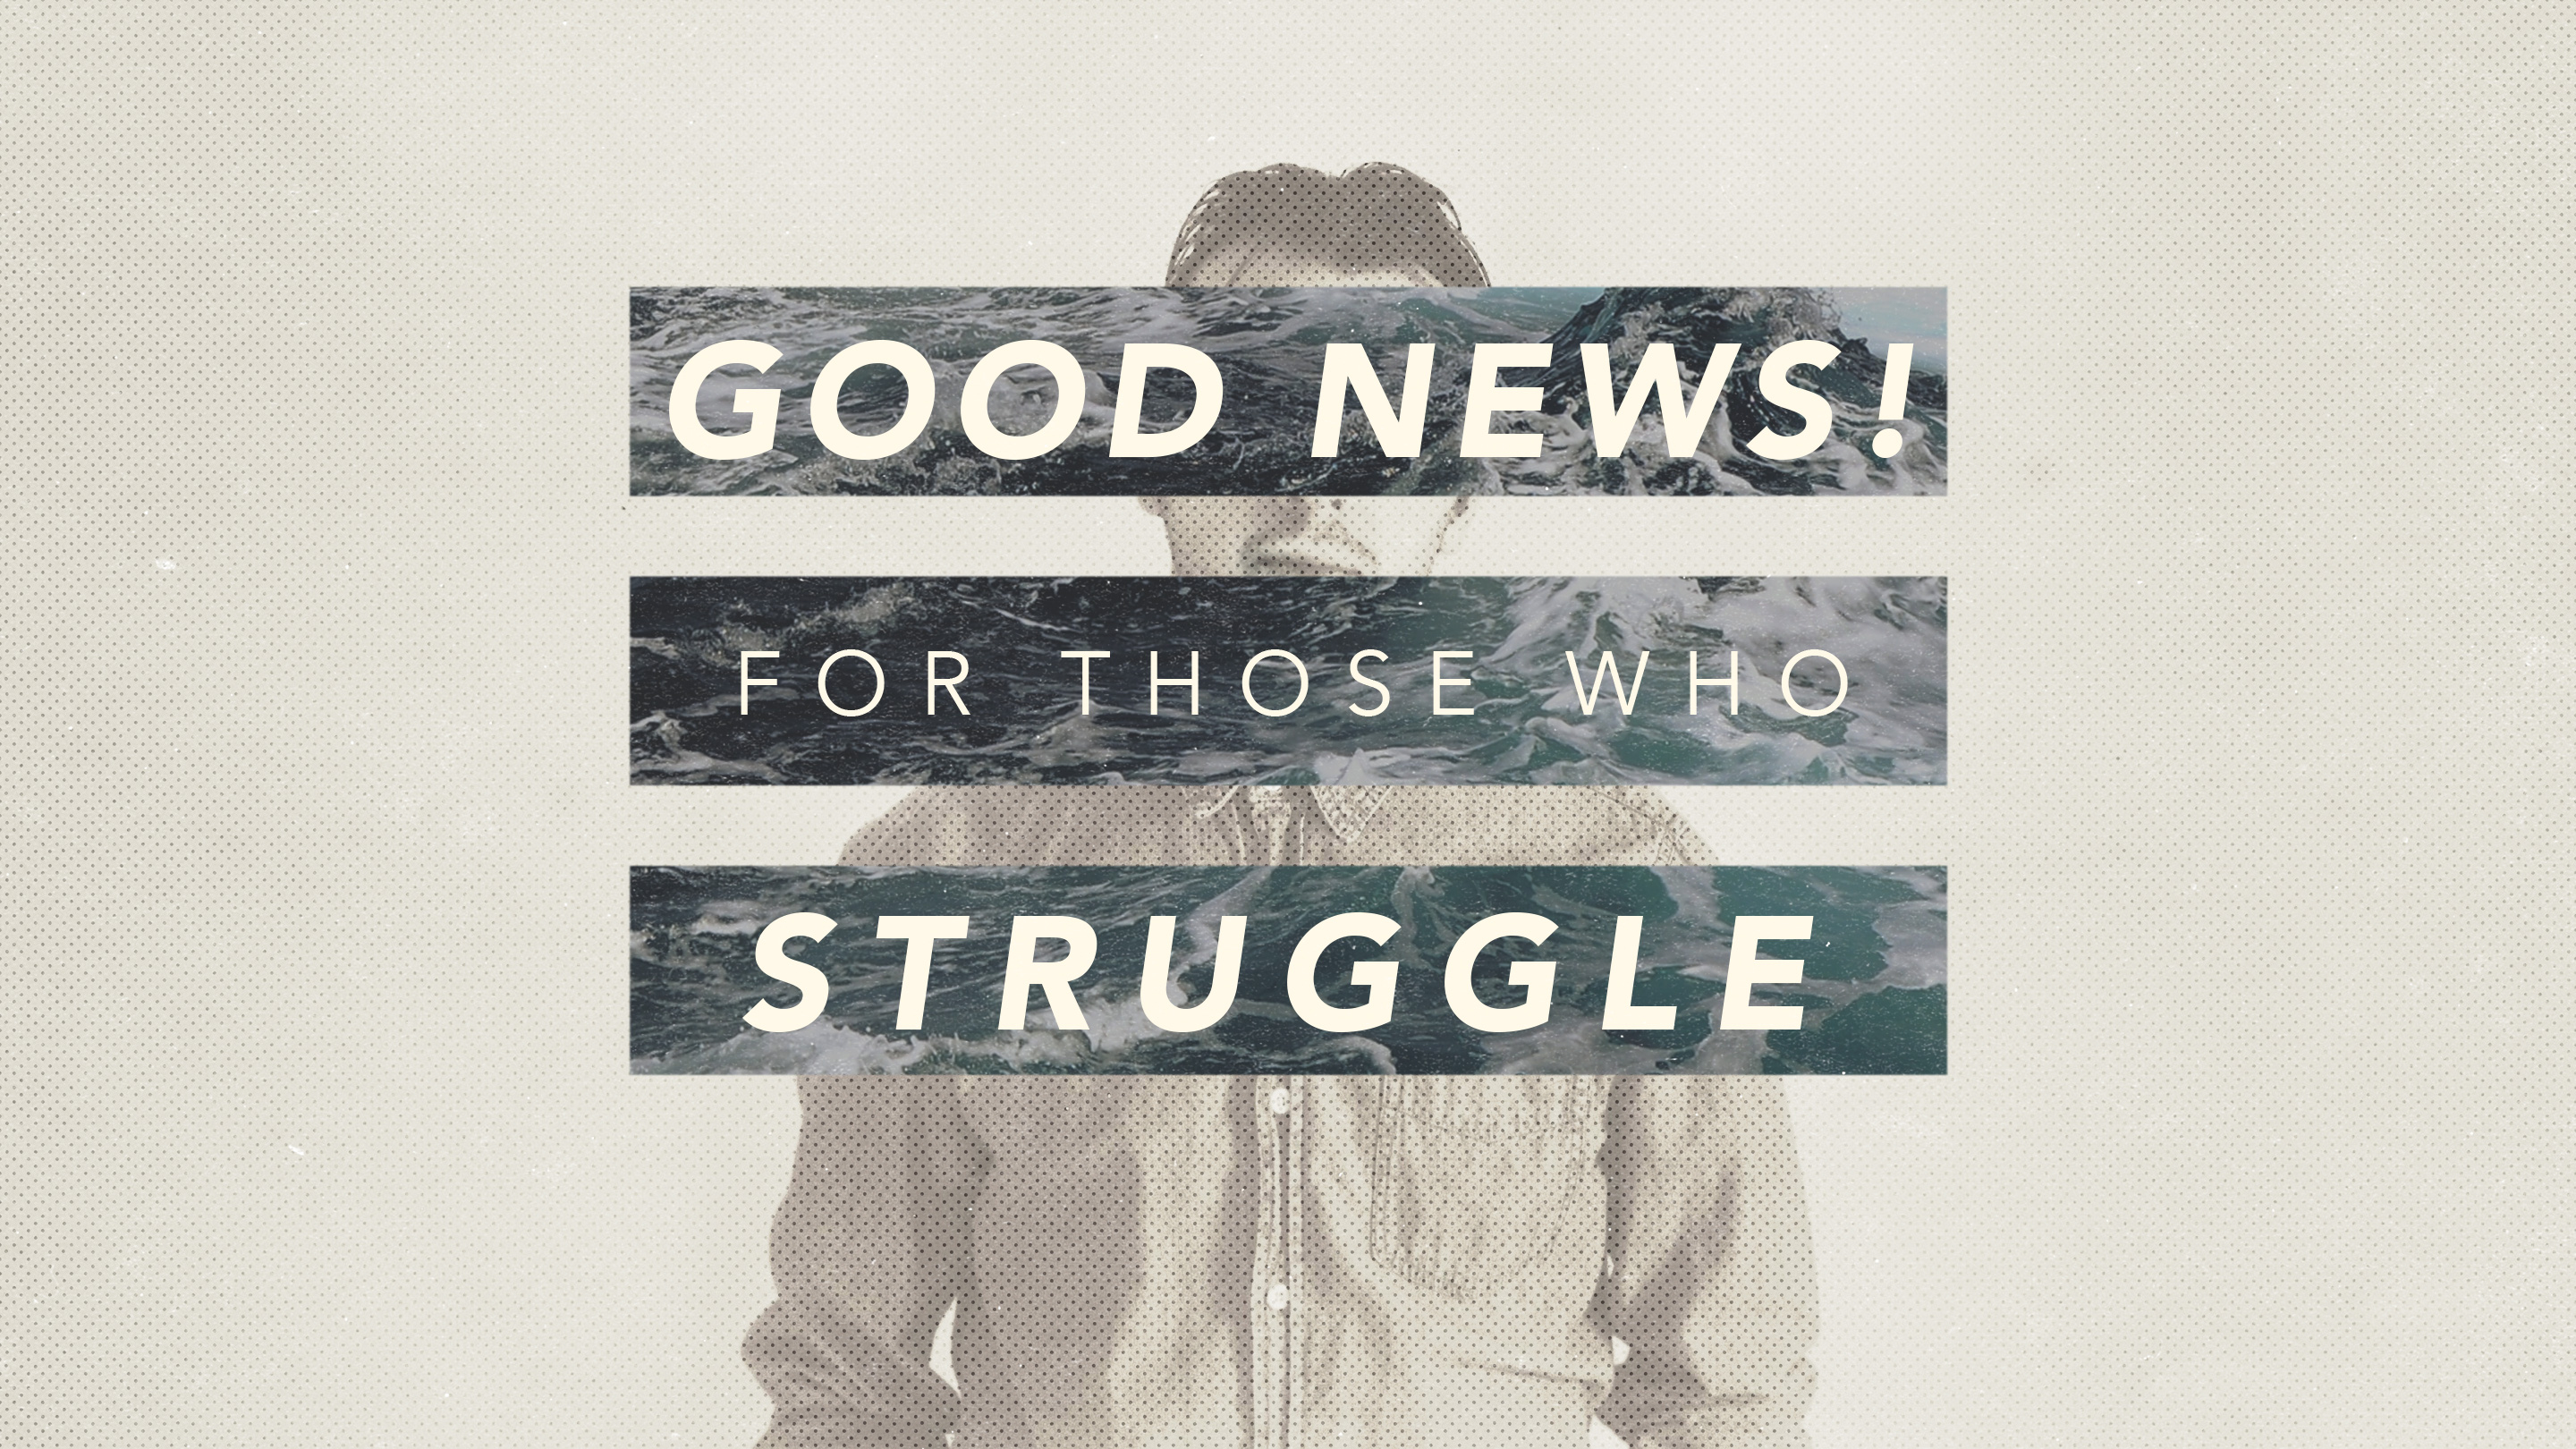 Good News! (for those who struggle)